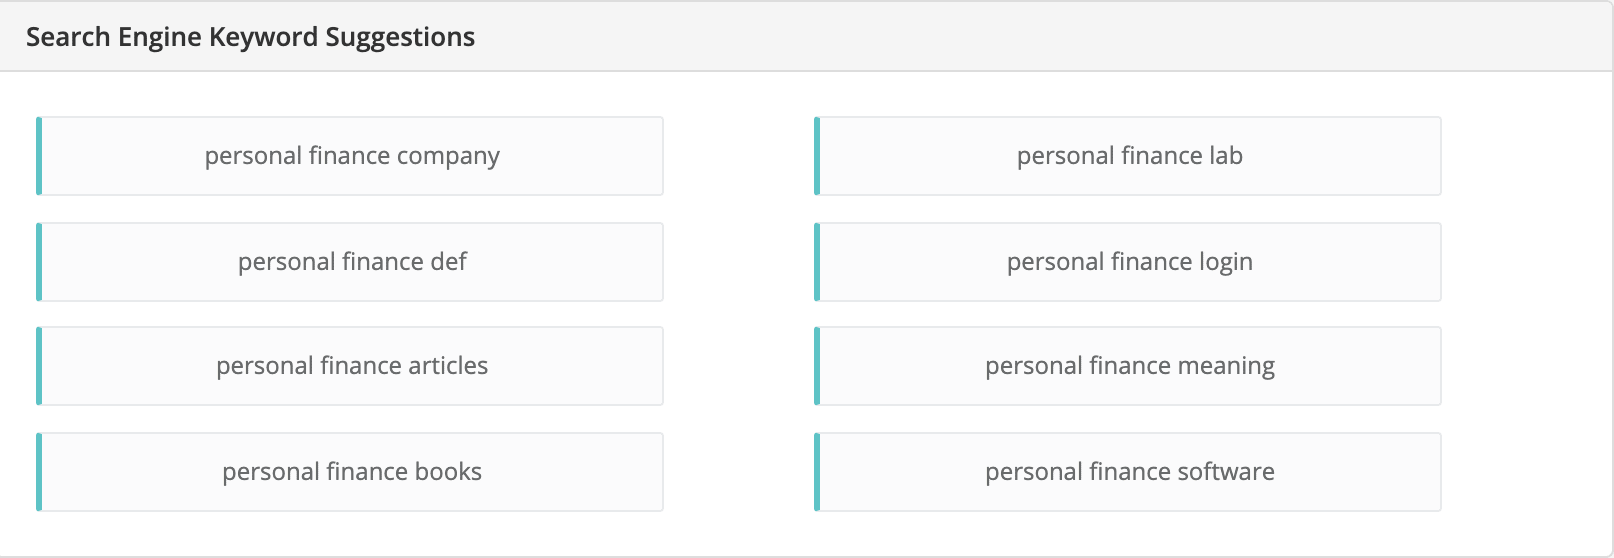 personal finance niche related keywords